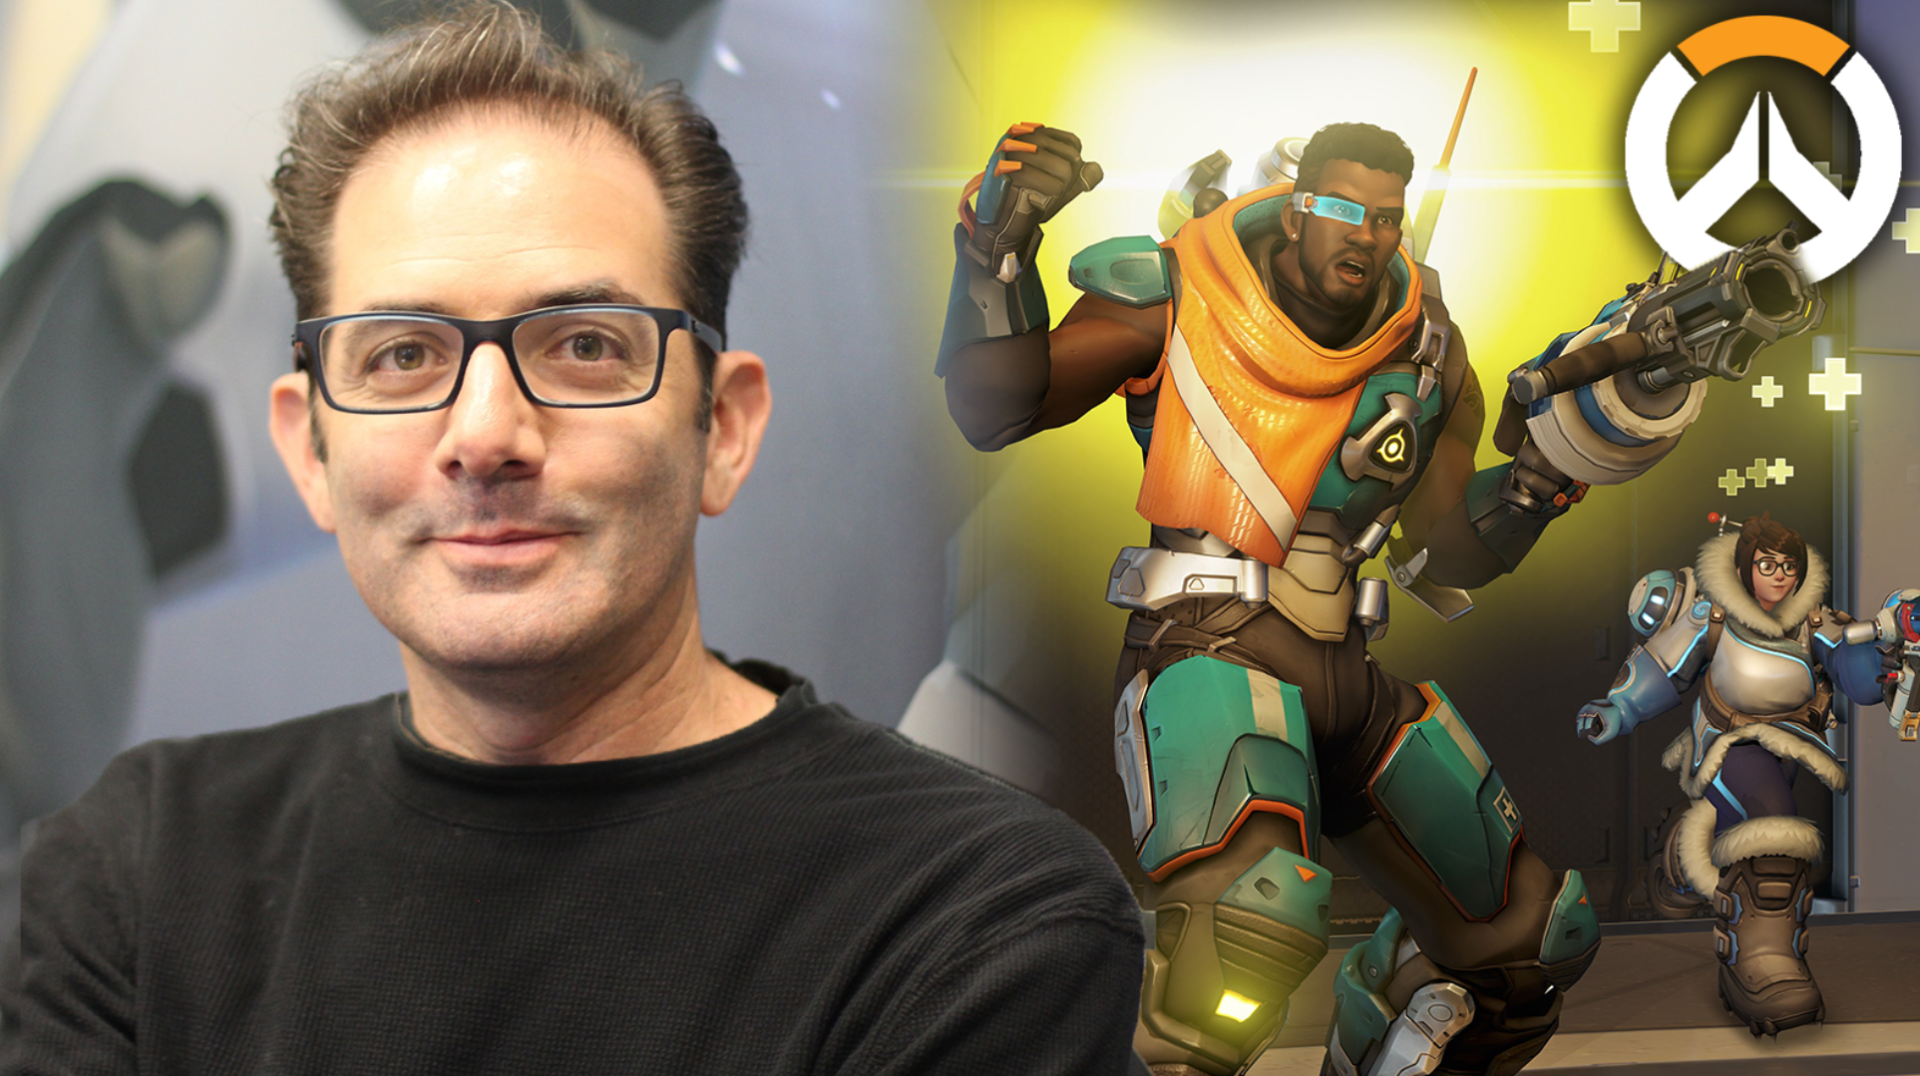 Jeff Kaplan discussing Overwatch